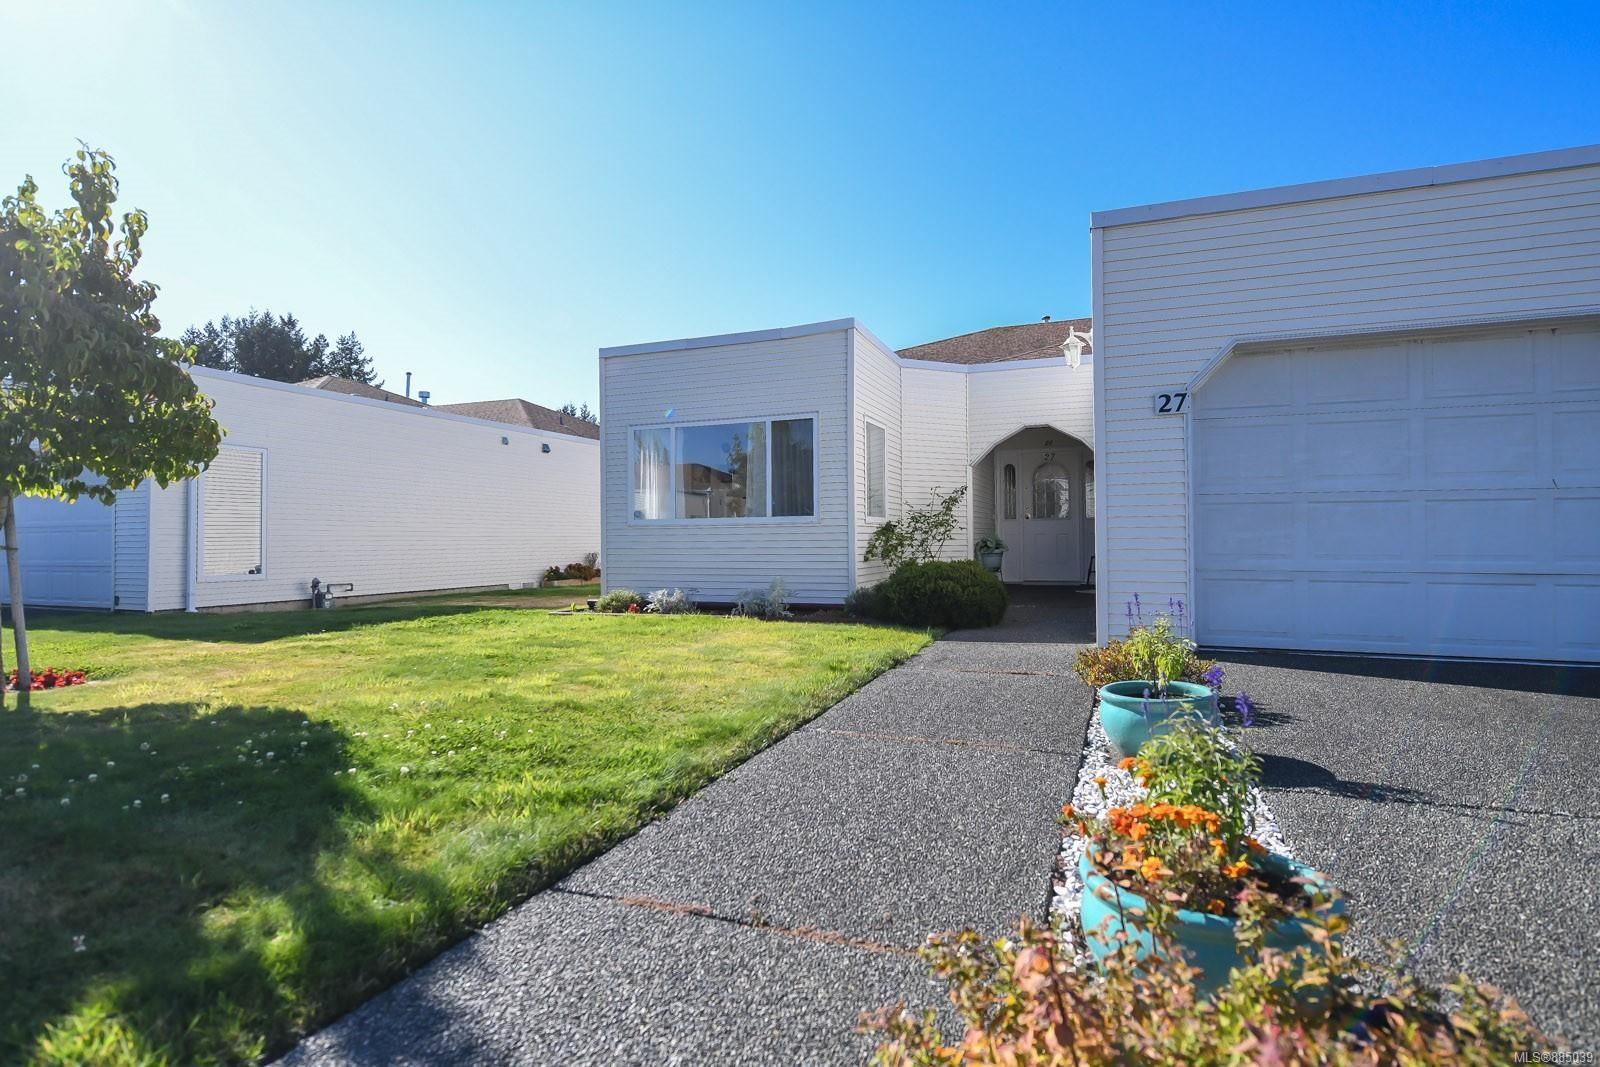 Main Photo: 27 677 Bunting Pl in : CV Comox (Town of) Row/Townhouse for sale (Comox Valley)  : MLS®# 885039